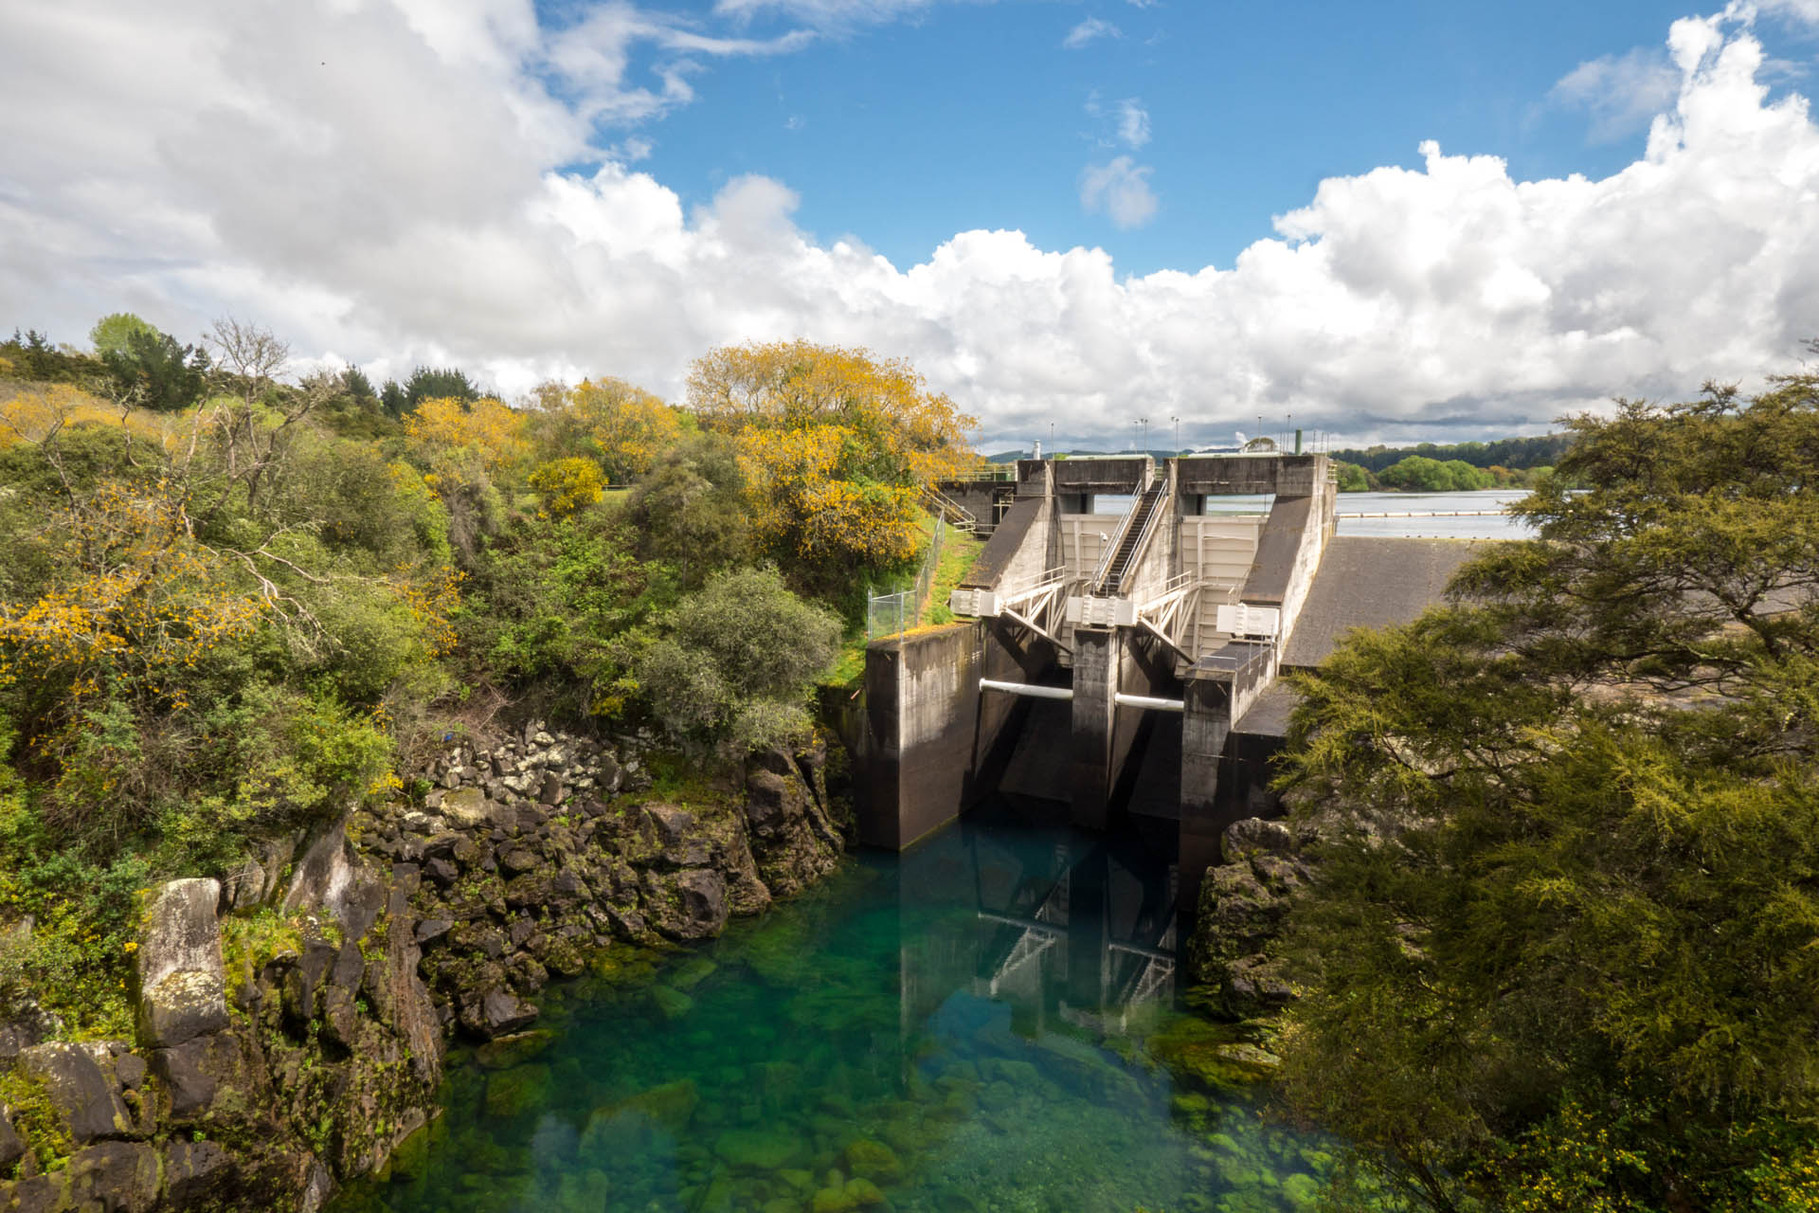 Aratiatia dam at Waikato river, near Taupo